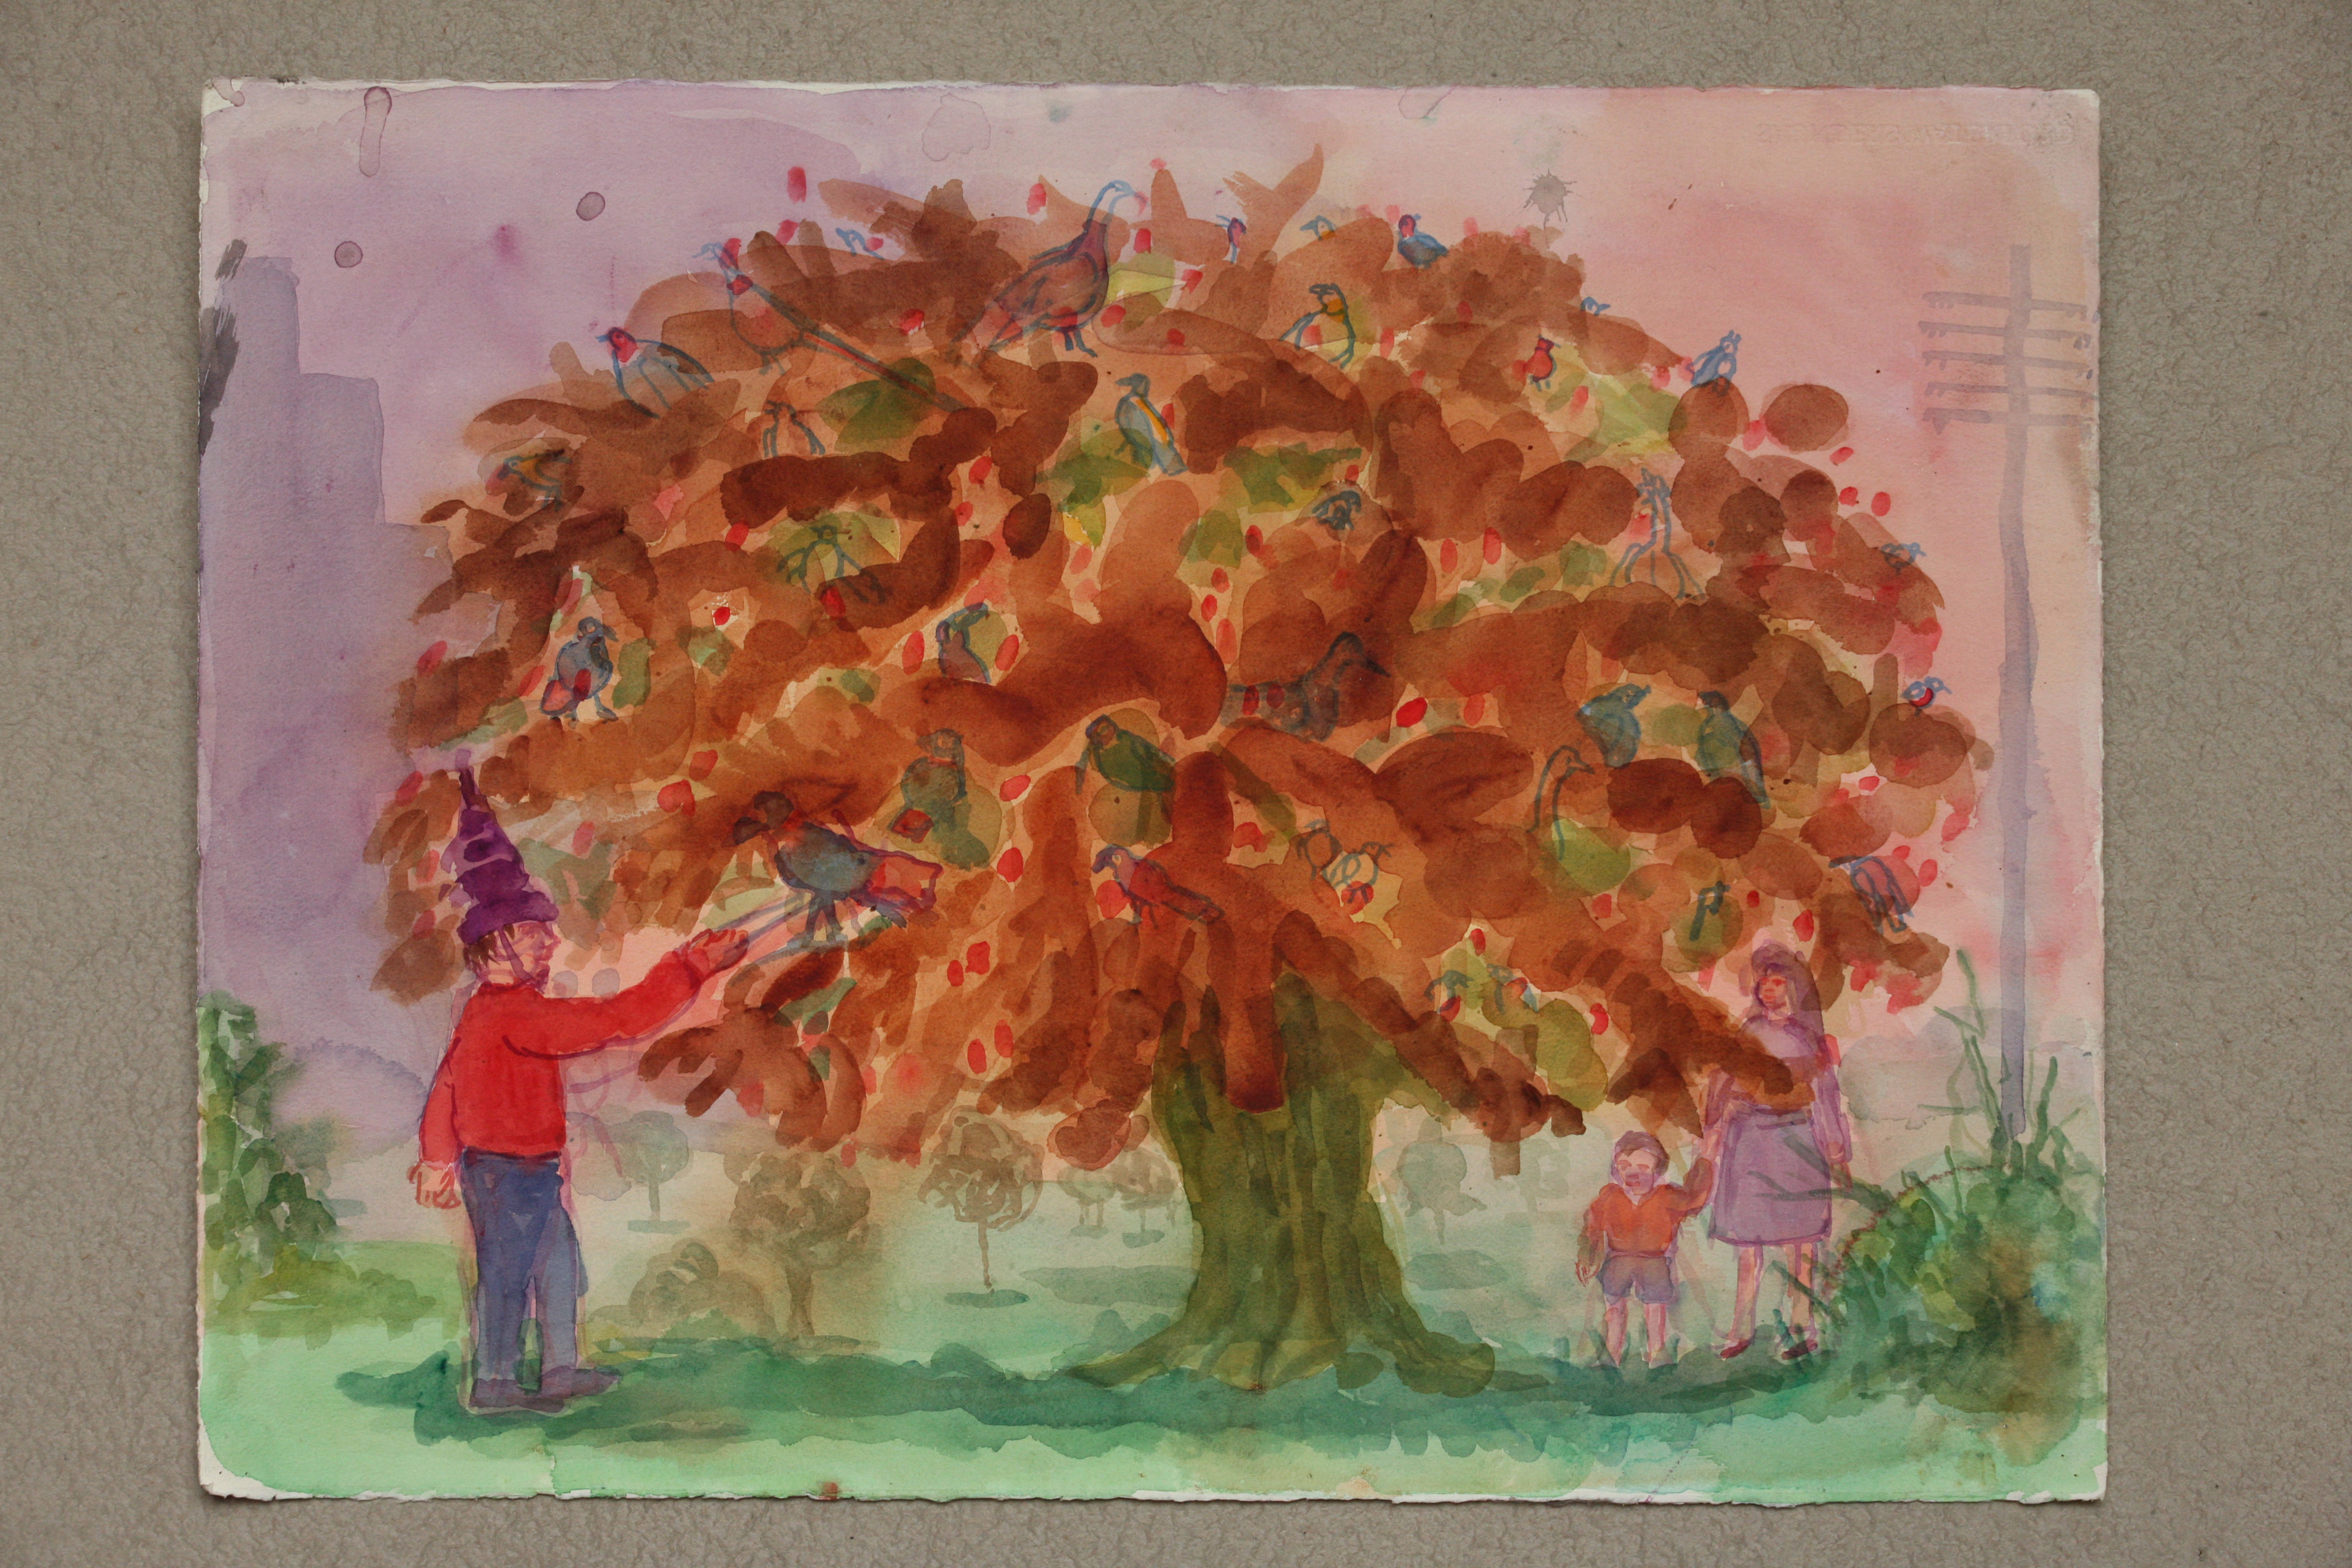 Watercolour on Paper. The Tree in the park